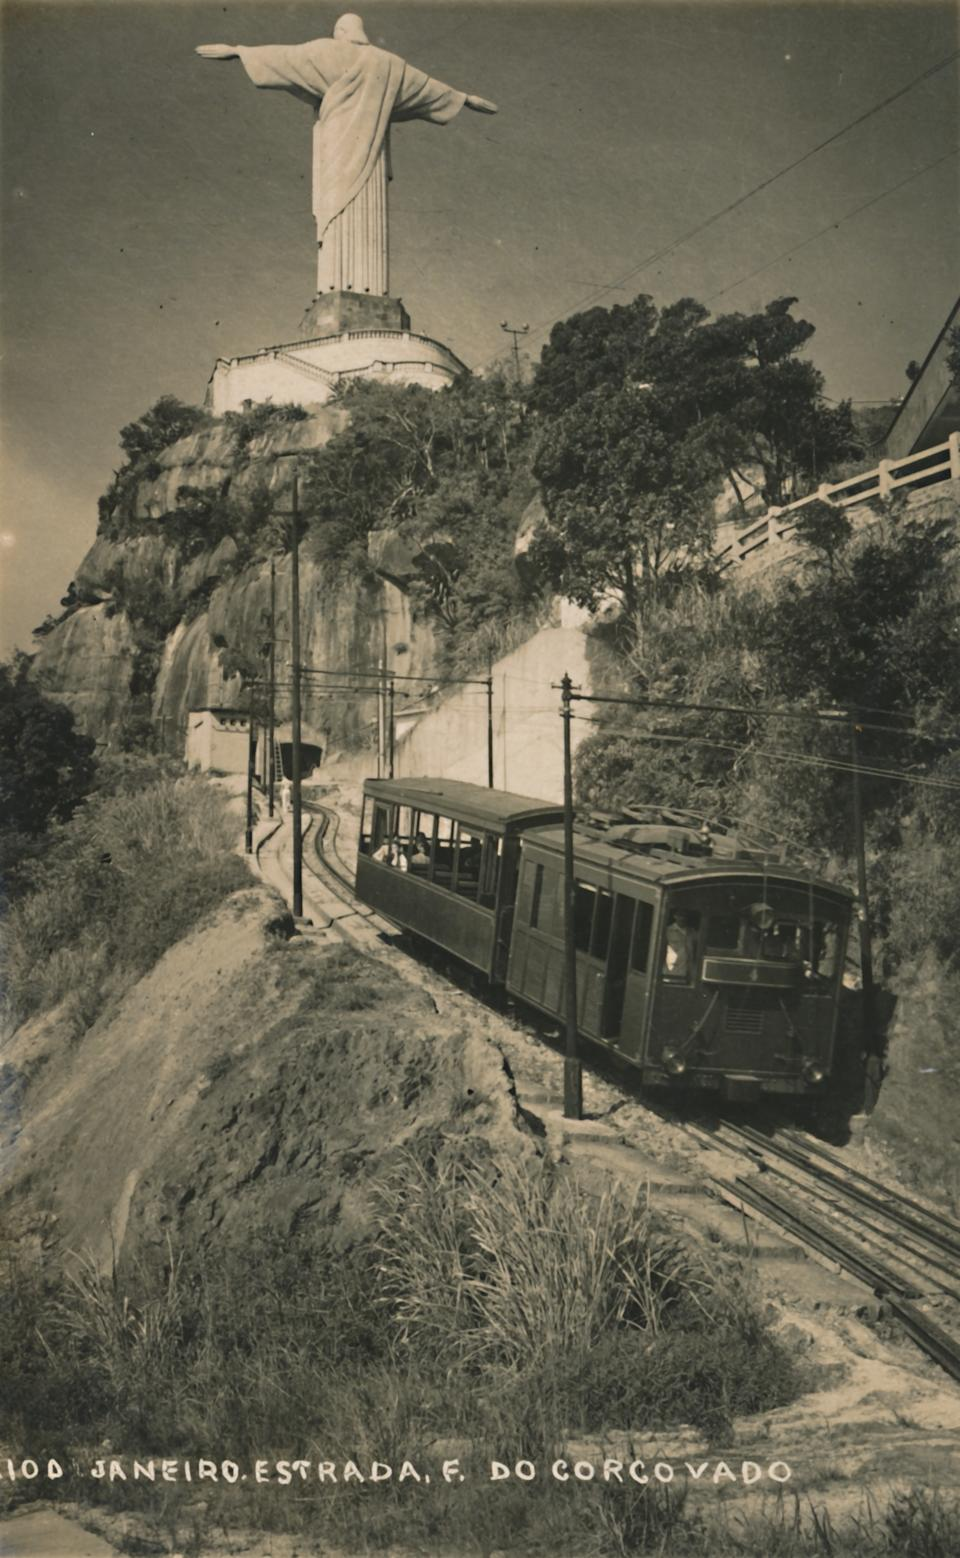 Corcovado Rack Railway, Rio de Janeiro, Brazil. The mountain railway, opened by Emperor Dom Pedro II in 1884, was initially steam-powered and later converted to electricity. The railway takes tourists up to the statue of Christ the Redeemer on the summit of Mount Corcovado. Postcard. Artist Unknown. (Photo by The Print Collector/Heritage Images via Getty Images)